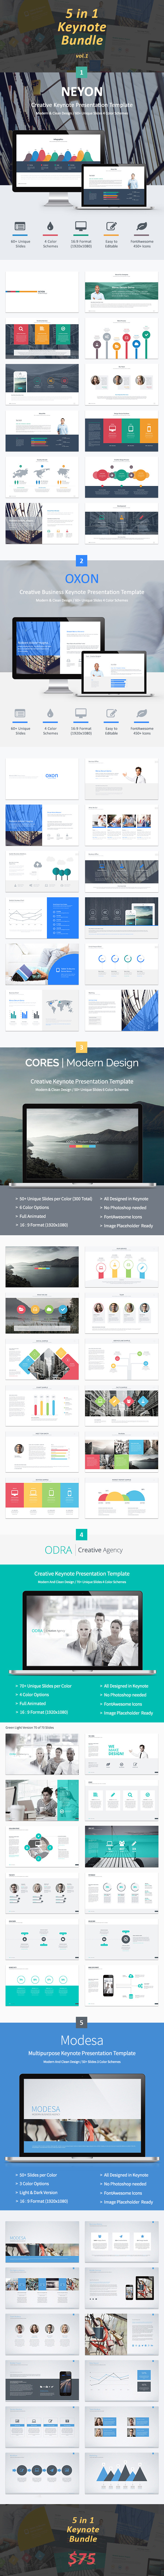 5-in-1 Keynote Bundle - Keynote Templates Presentation Templates